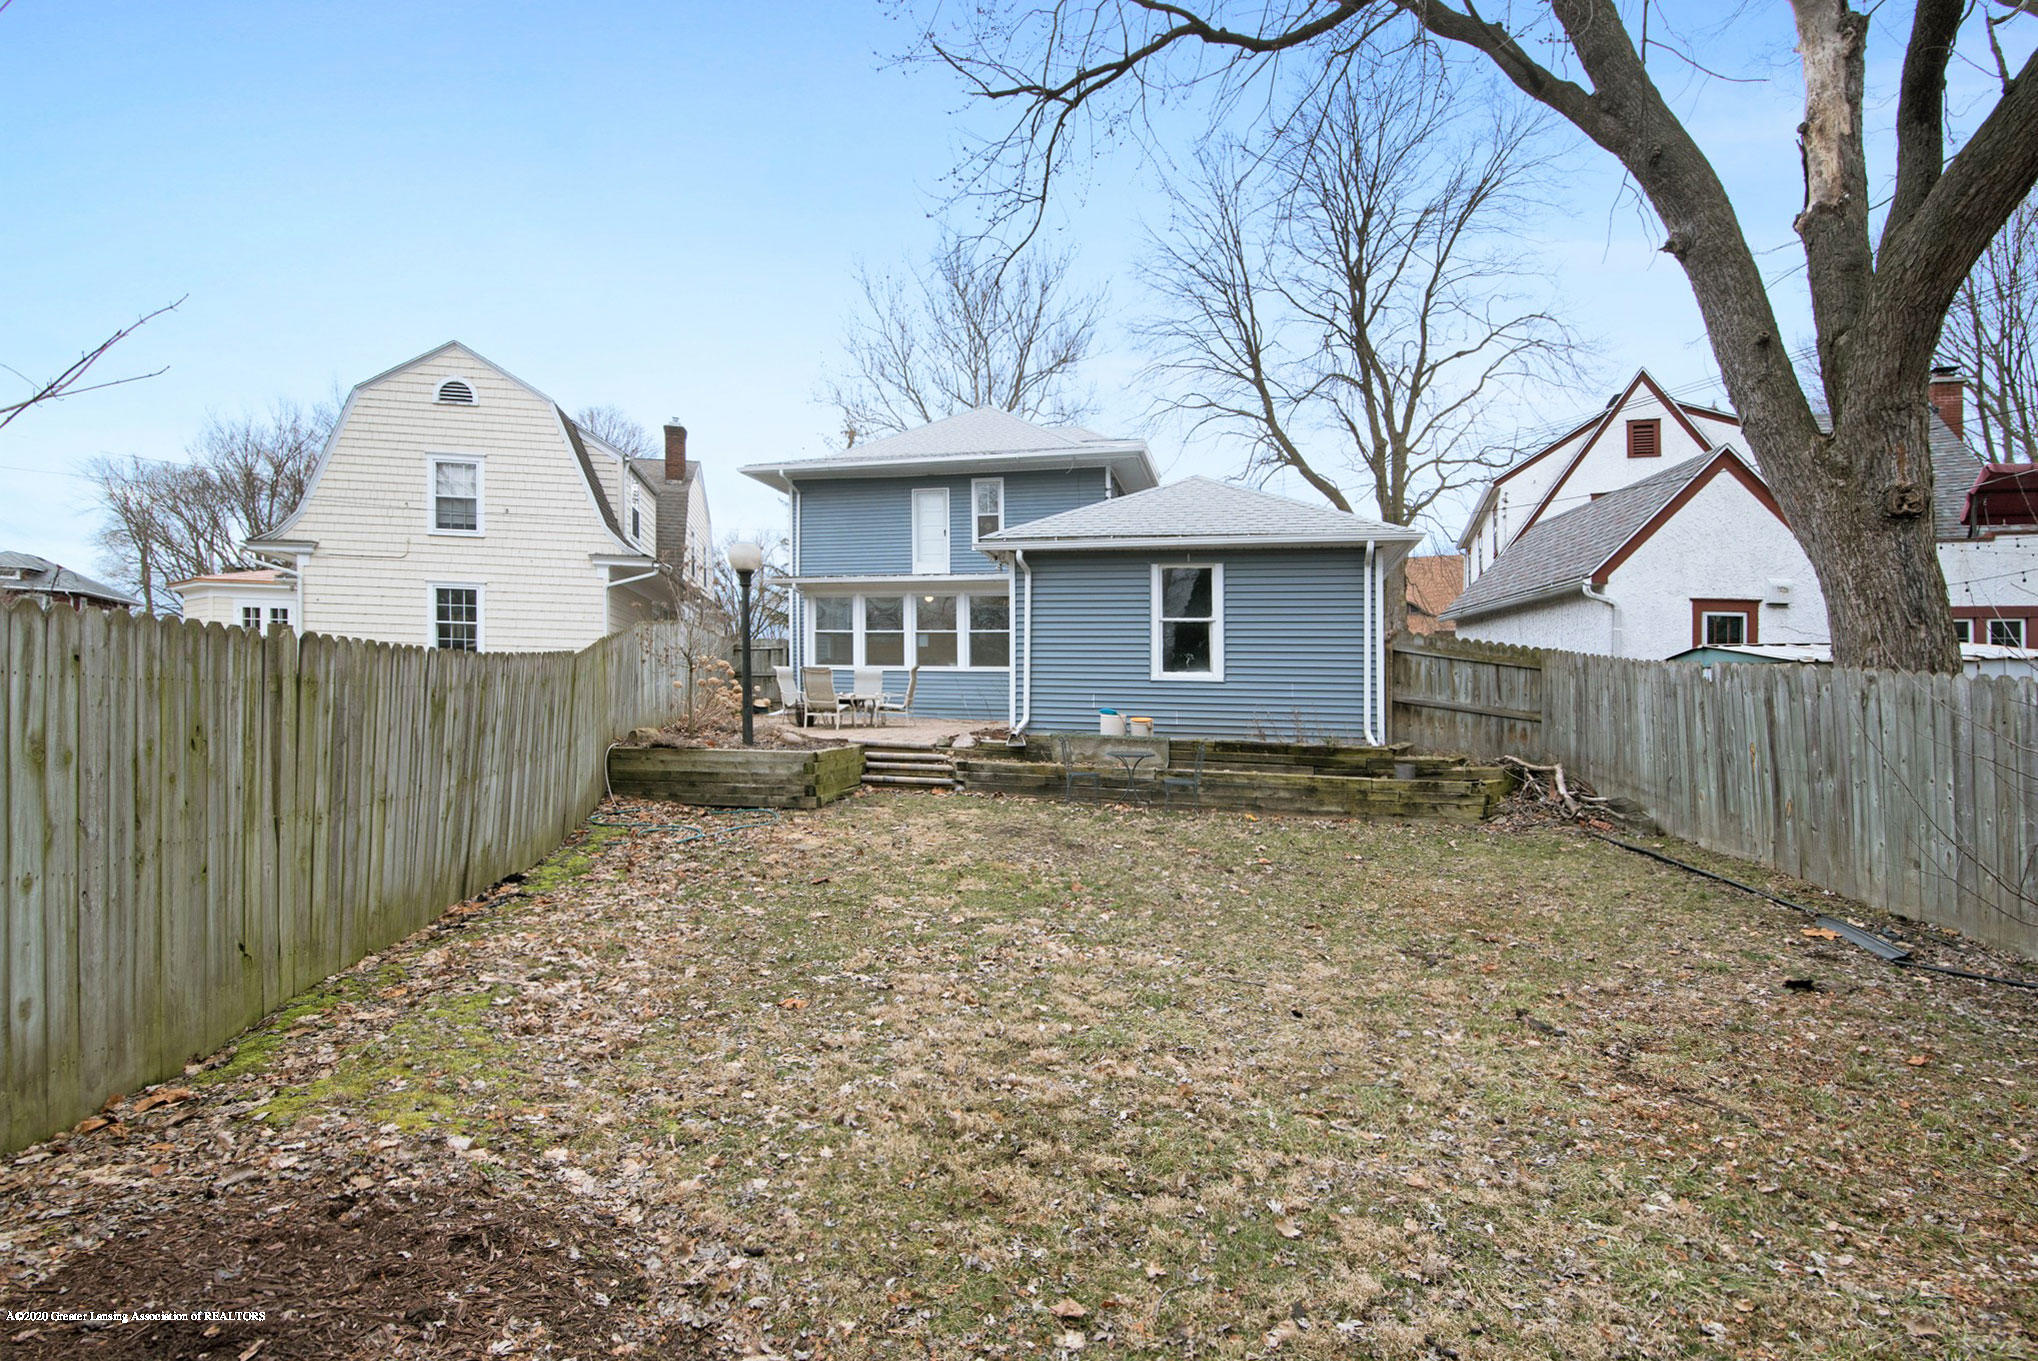 1131 S Genesee Dr - 36 - 35